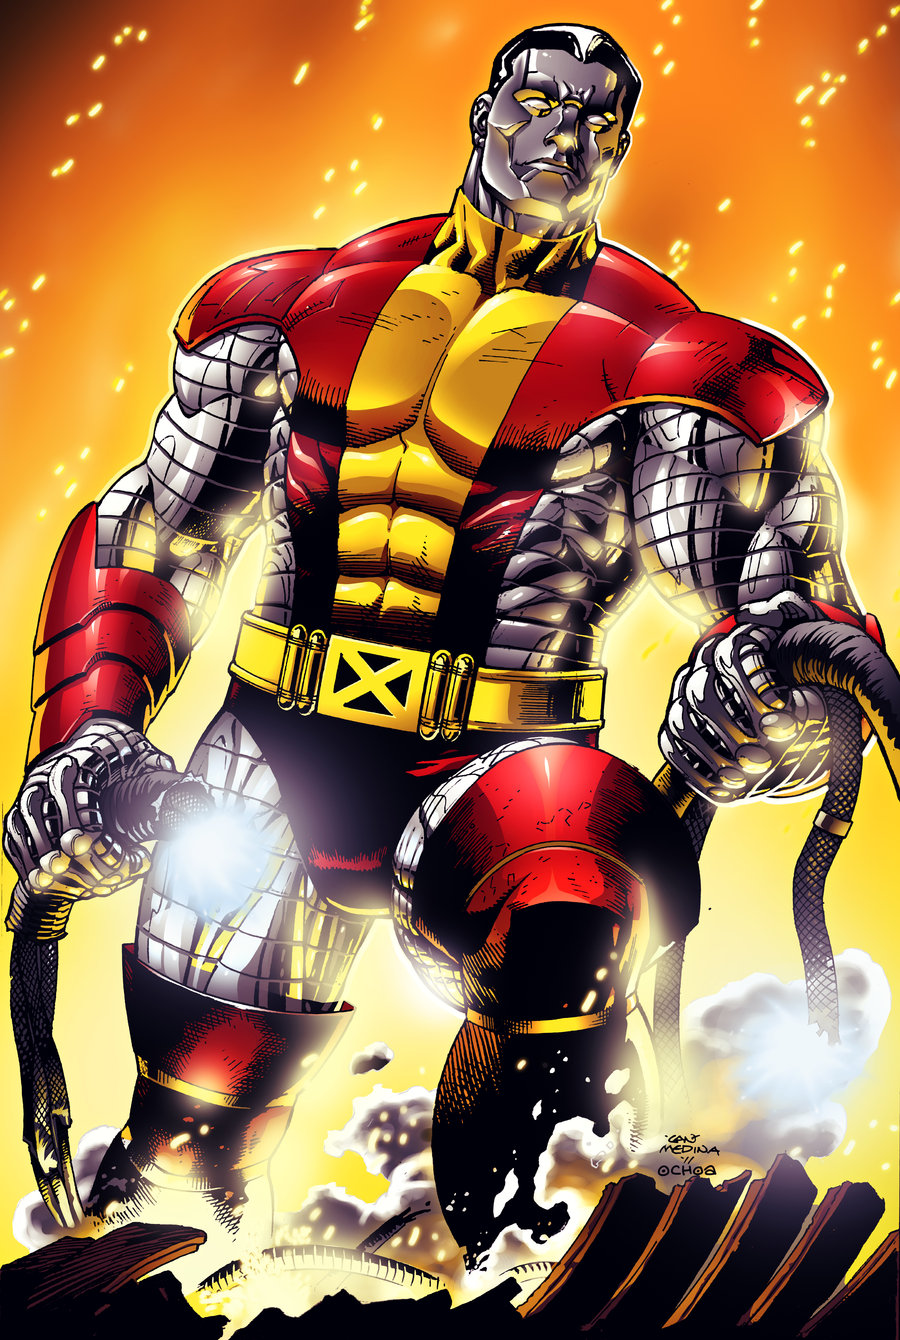 colossus marvel x men - photo #5